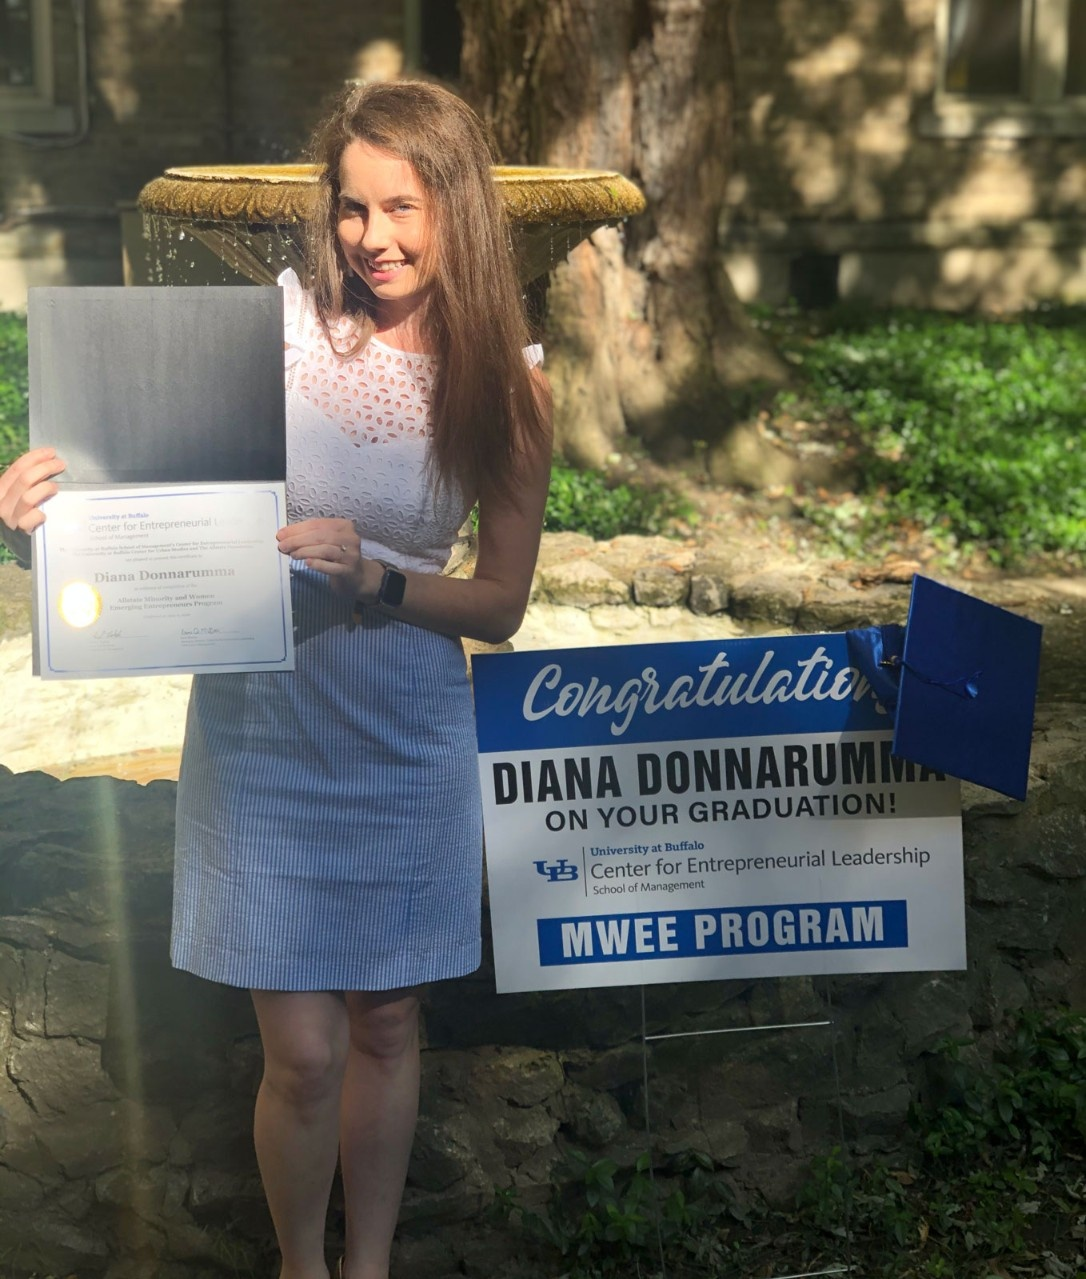 Donnarumma poses with her certificate of completion, graduation cap and a lawn sign congratulating her on graduating from the MWEE program.